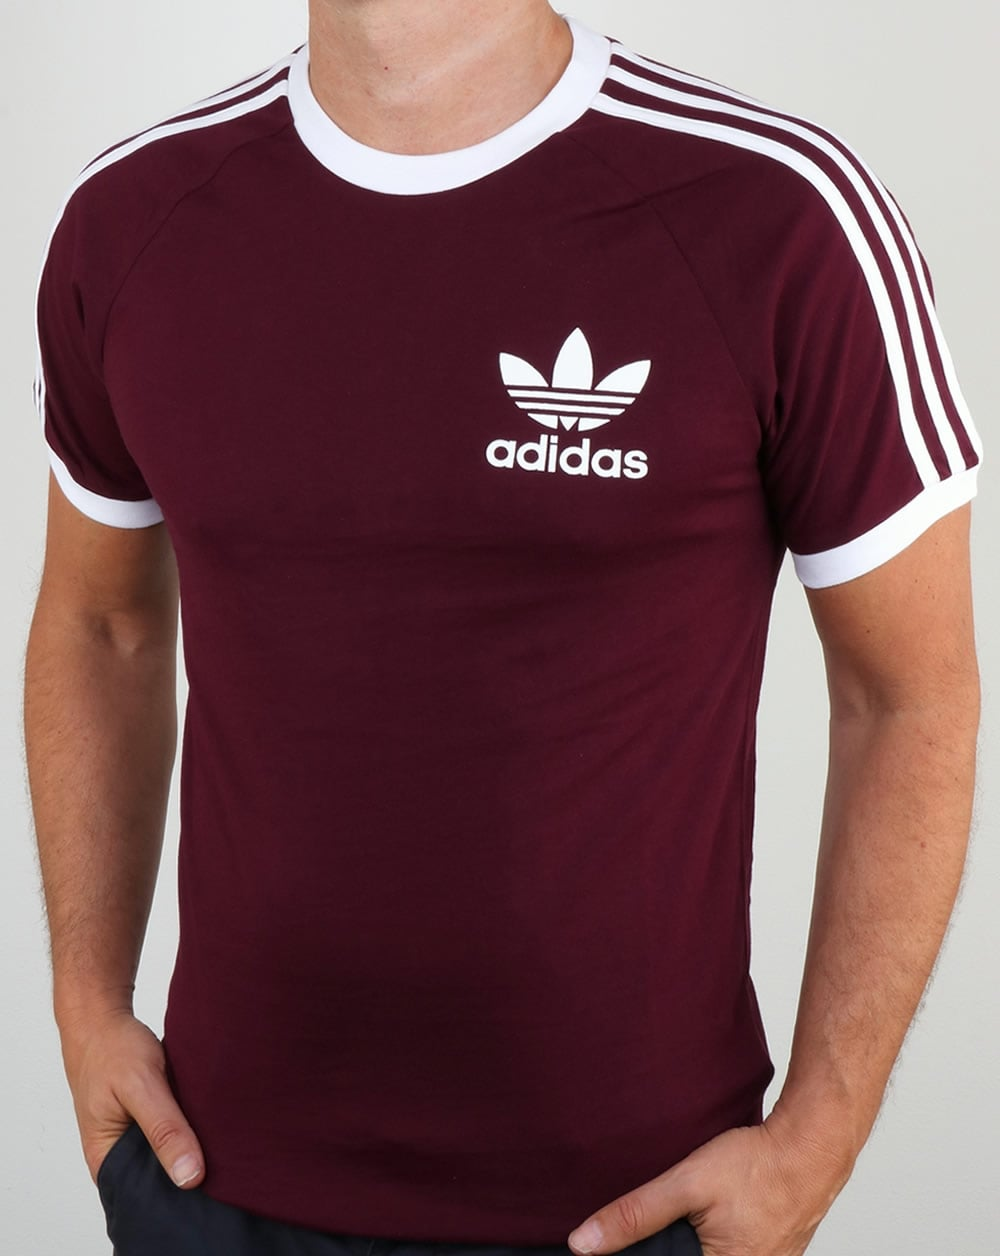 Adidas originals clfn t shirt maroon3 stripes originals for Adidas lotus t shirt